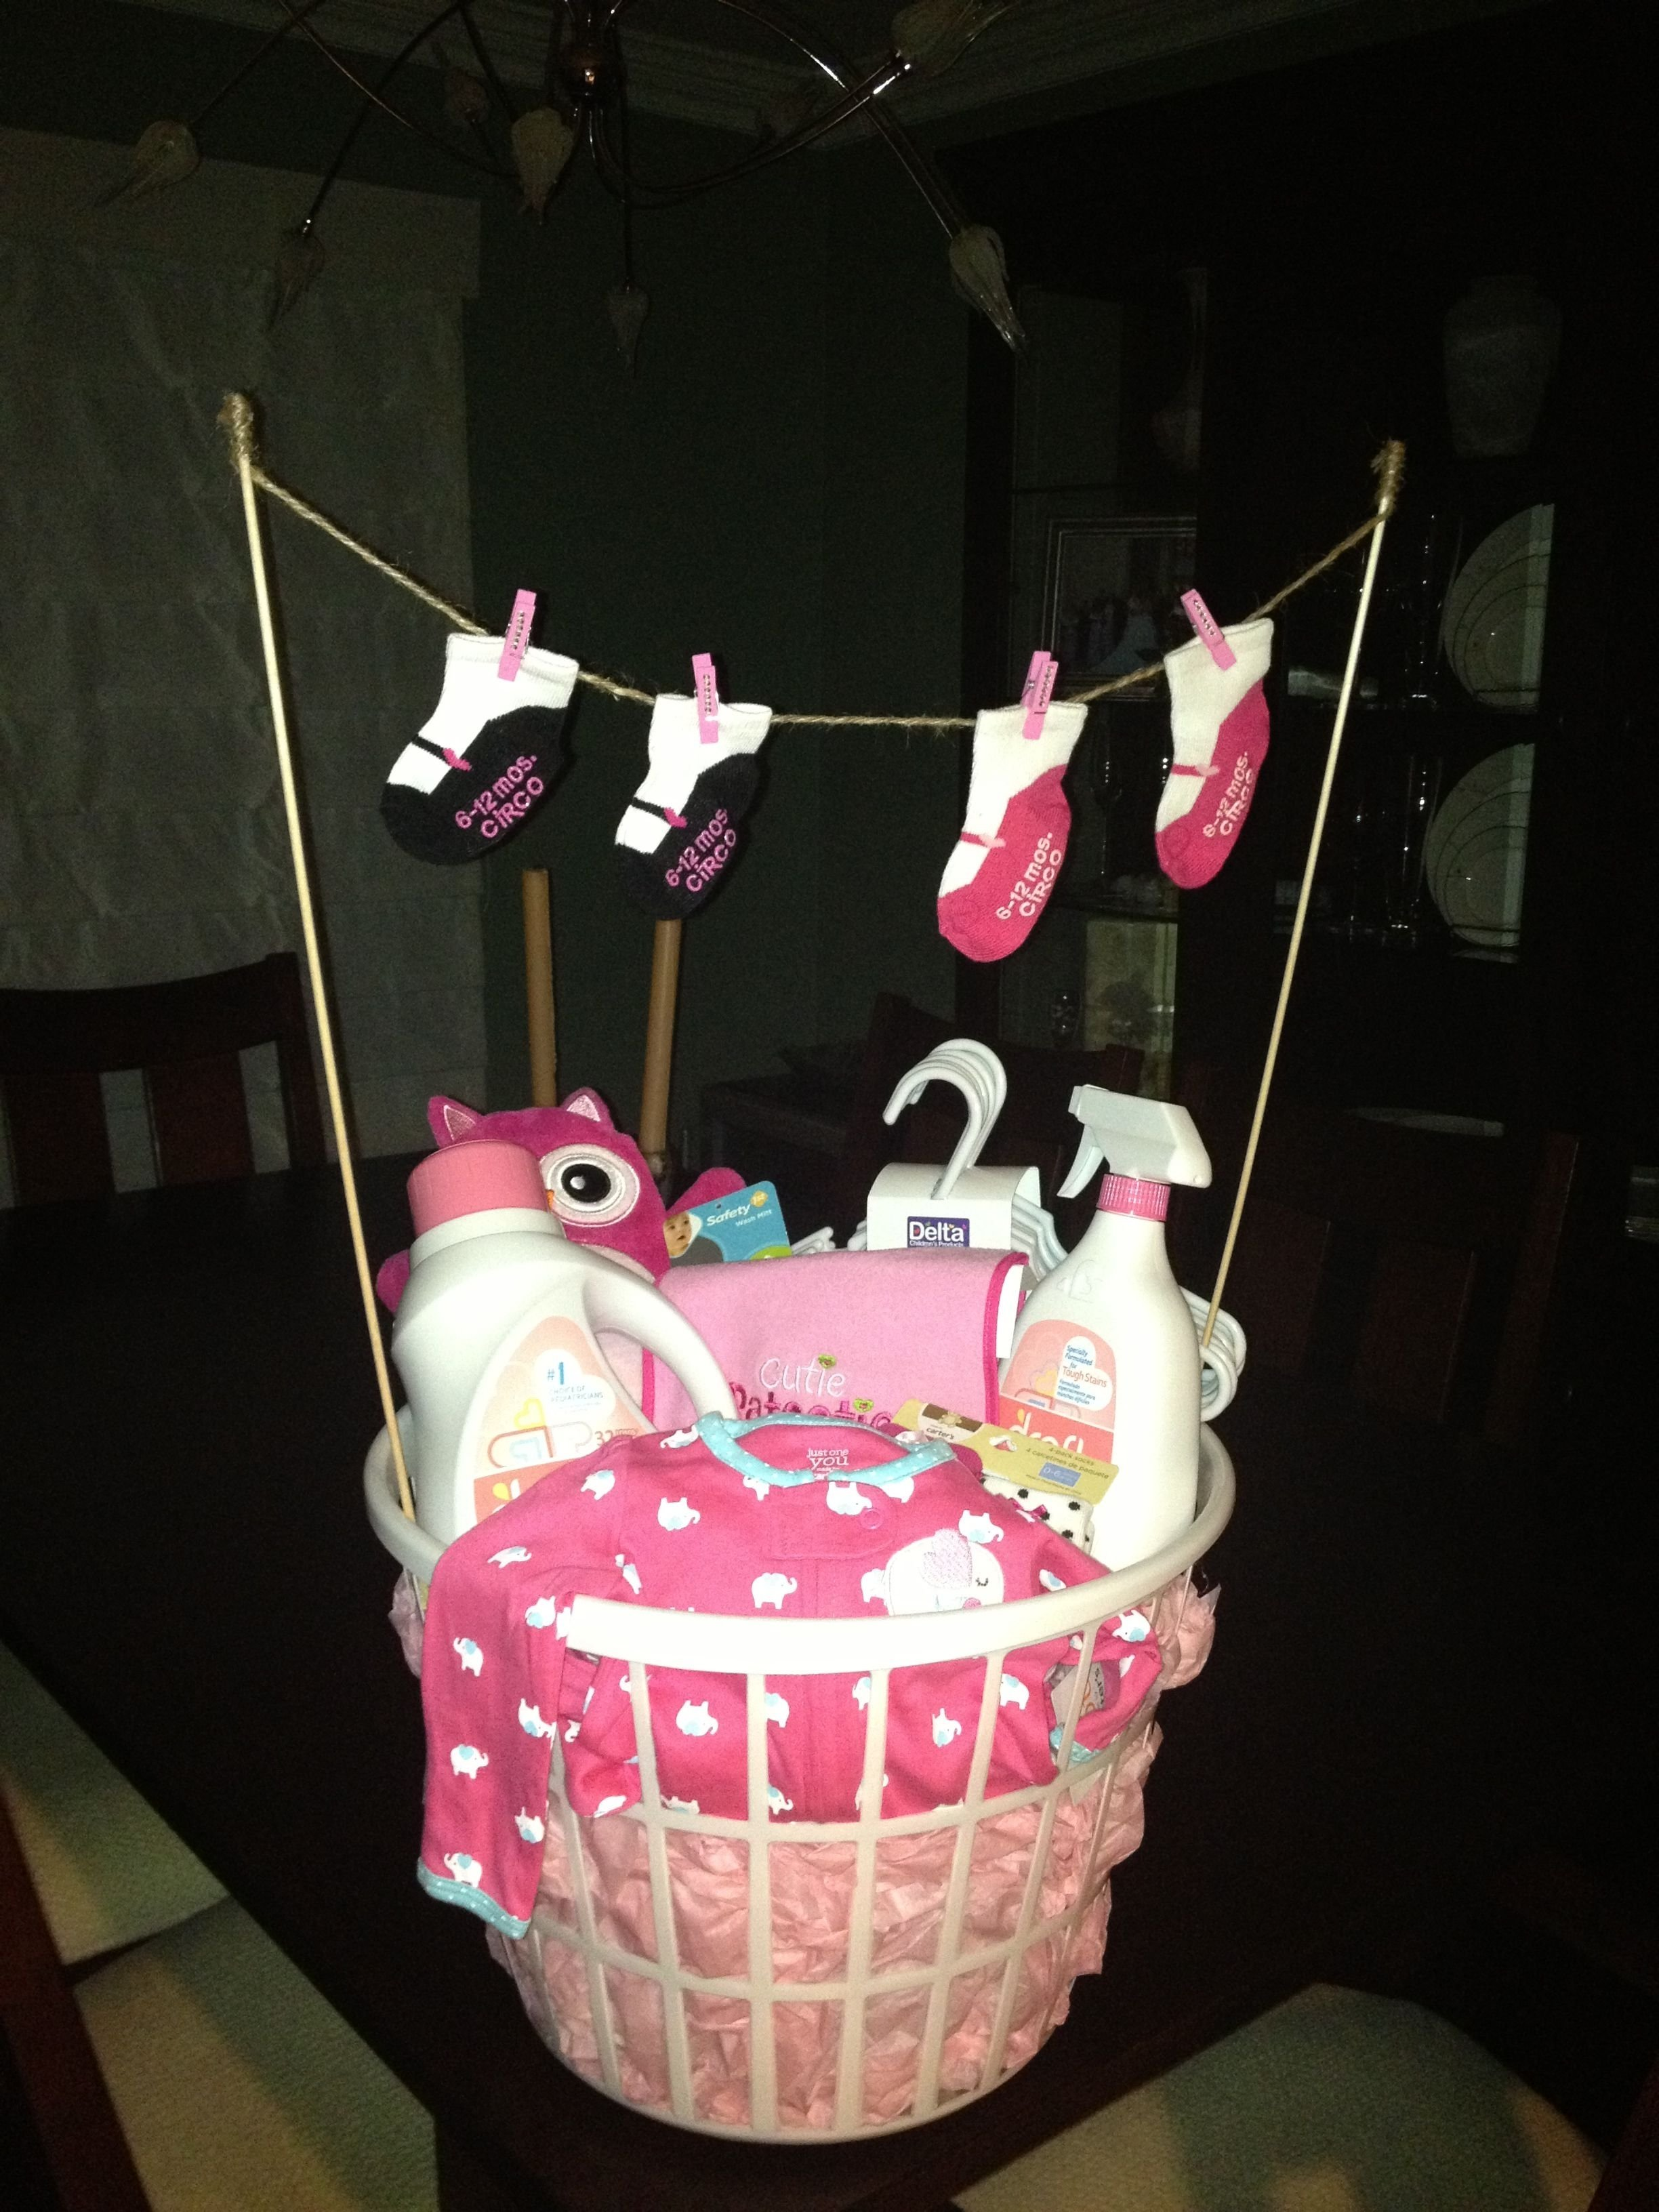 10 Ideal Cute Ideas For Baby Shower Gifts laundry basket baby shower gift baby gifts pinterest laundry 3 2020